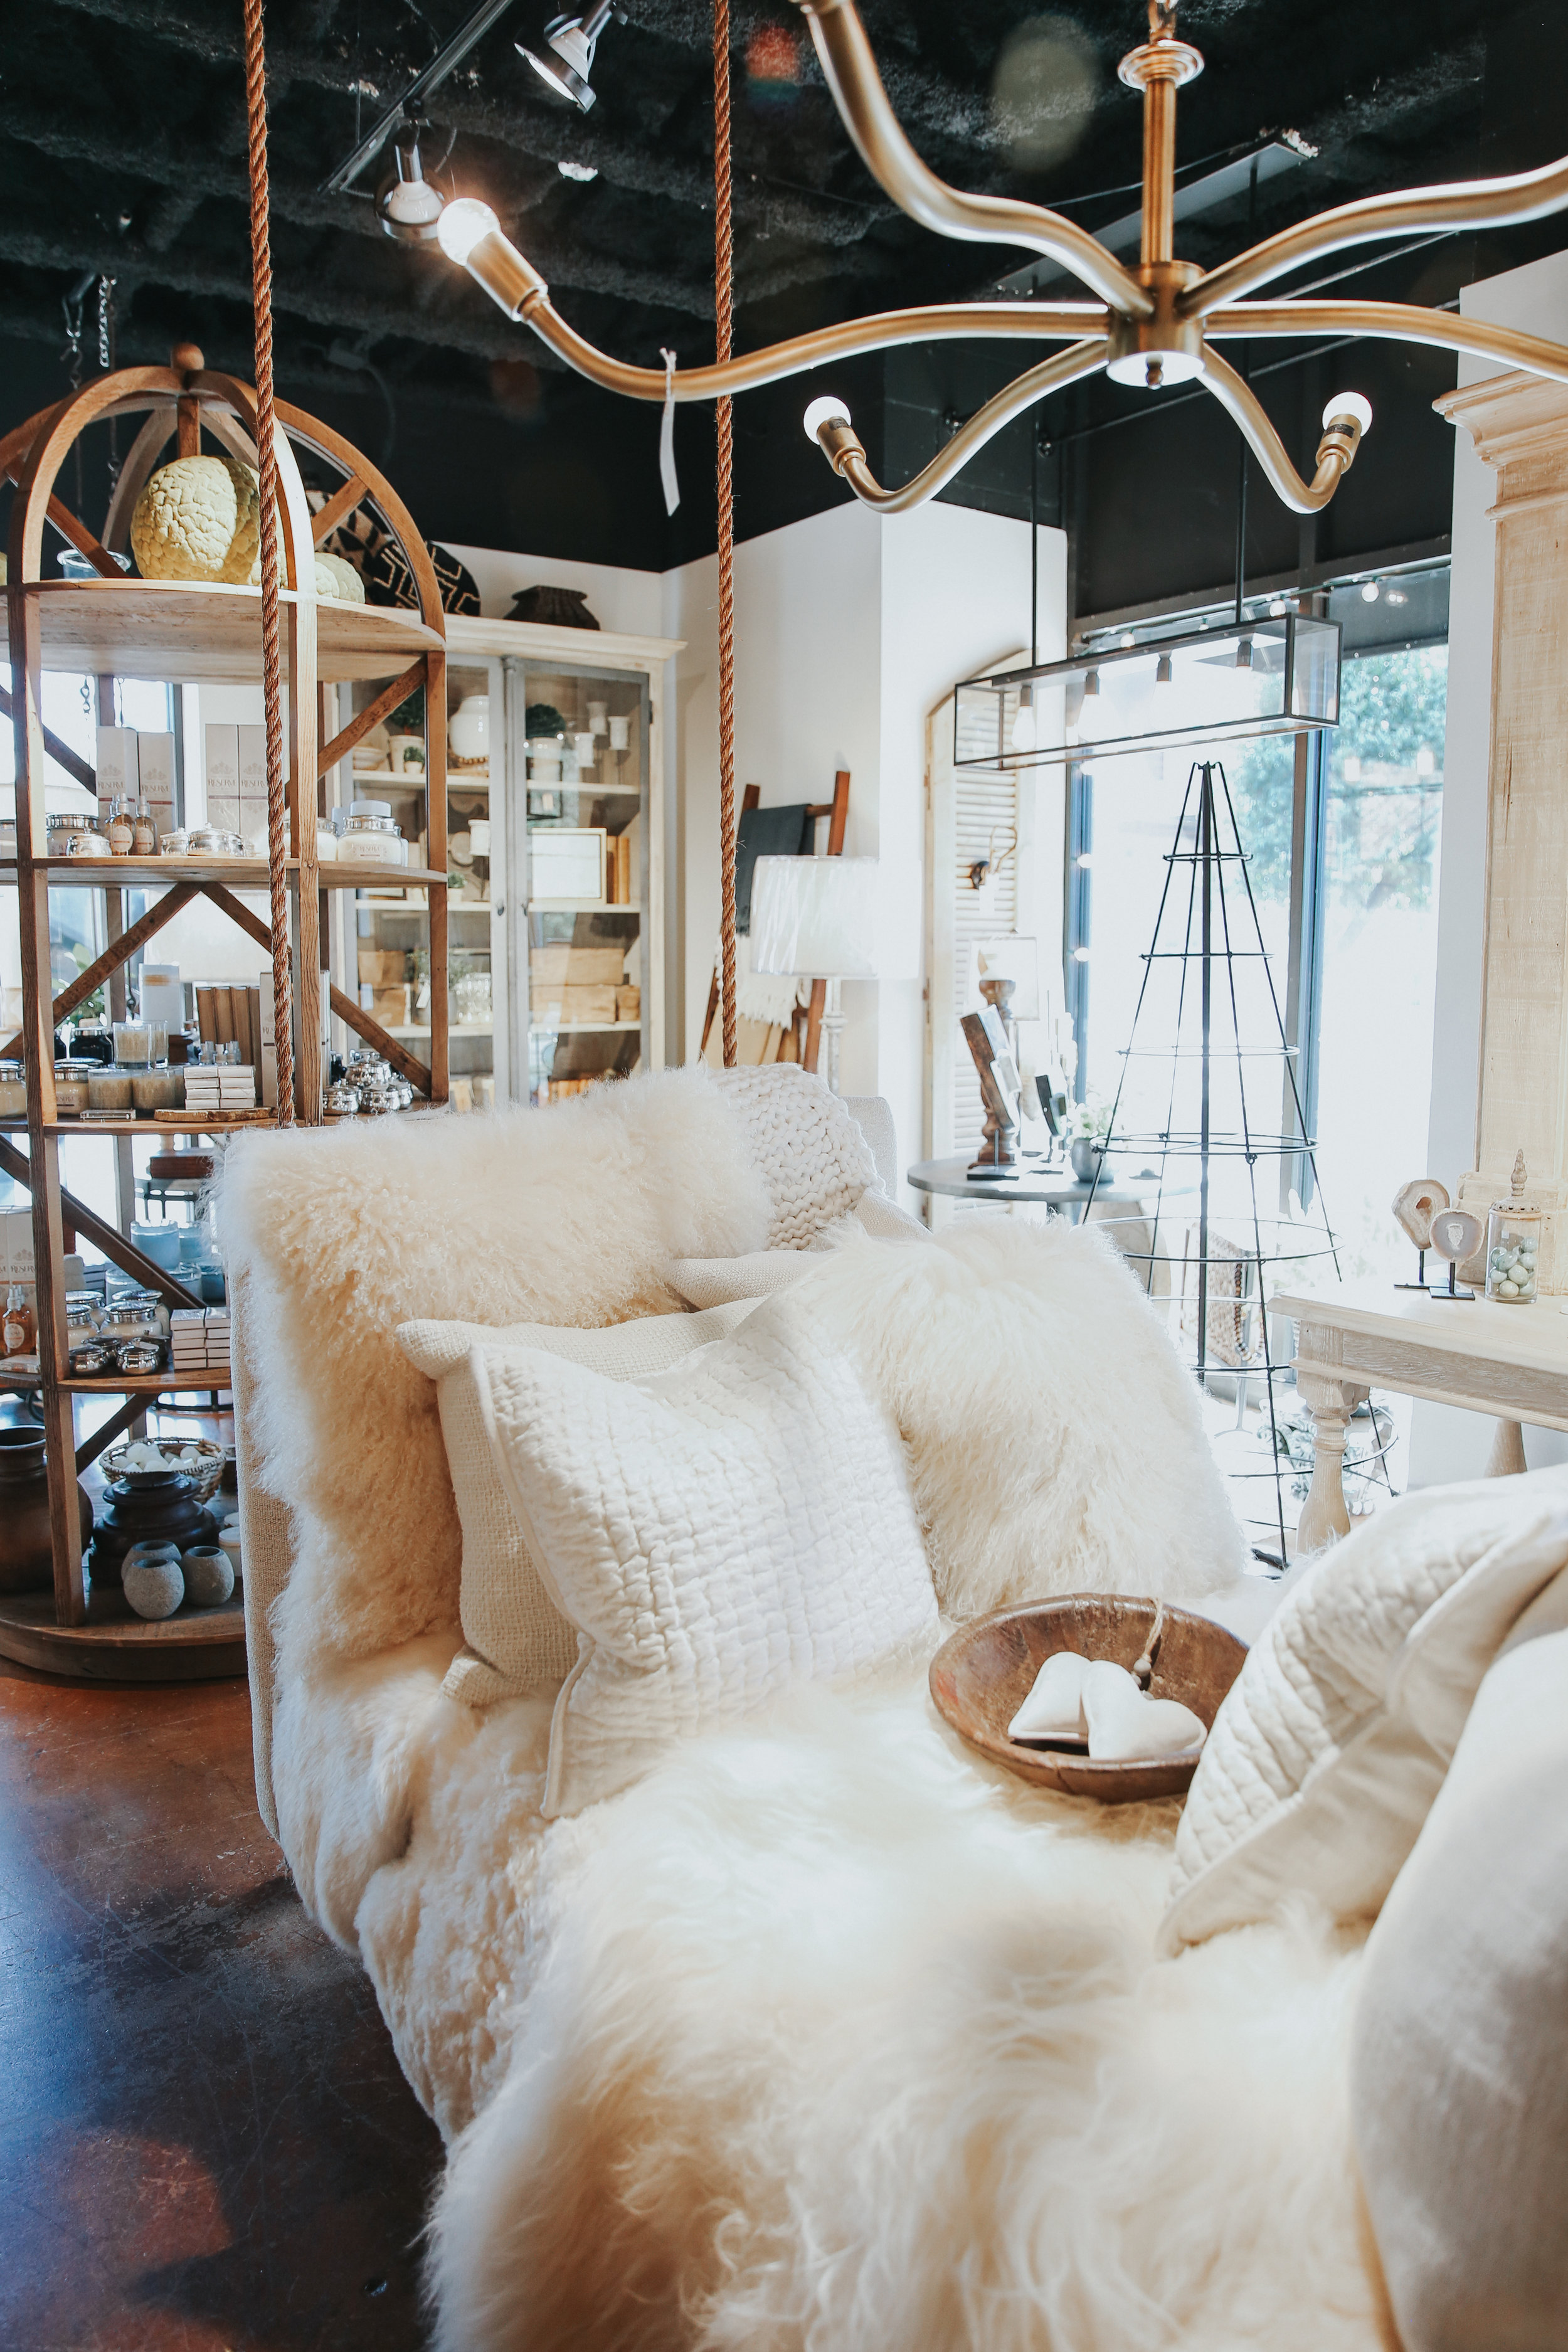 Indoor swing and home decor. Vignette Boutique downstairs.